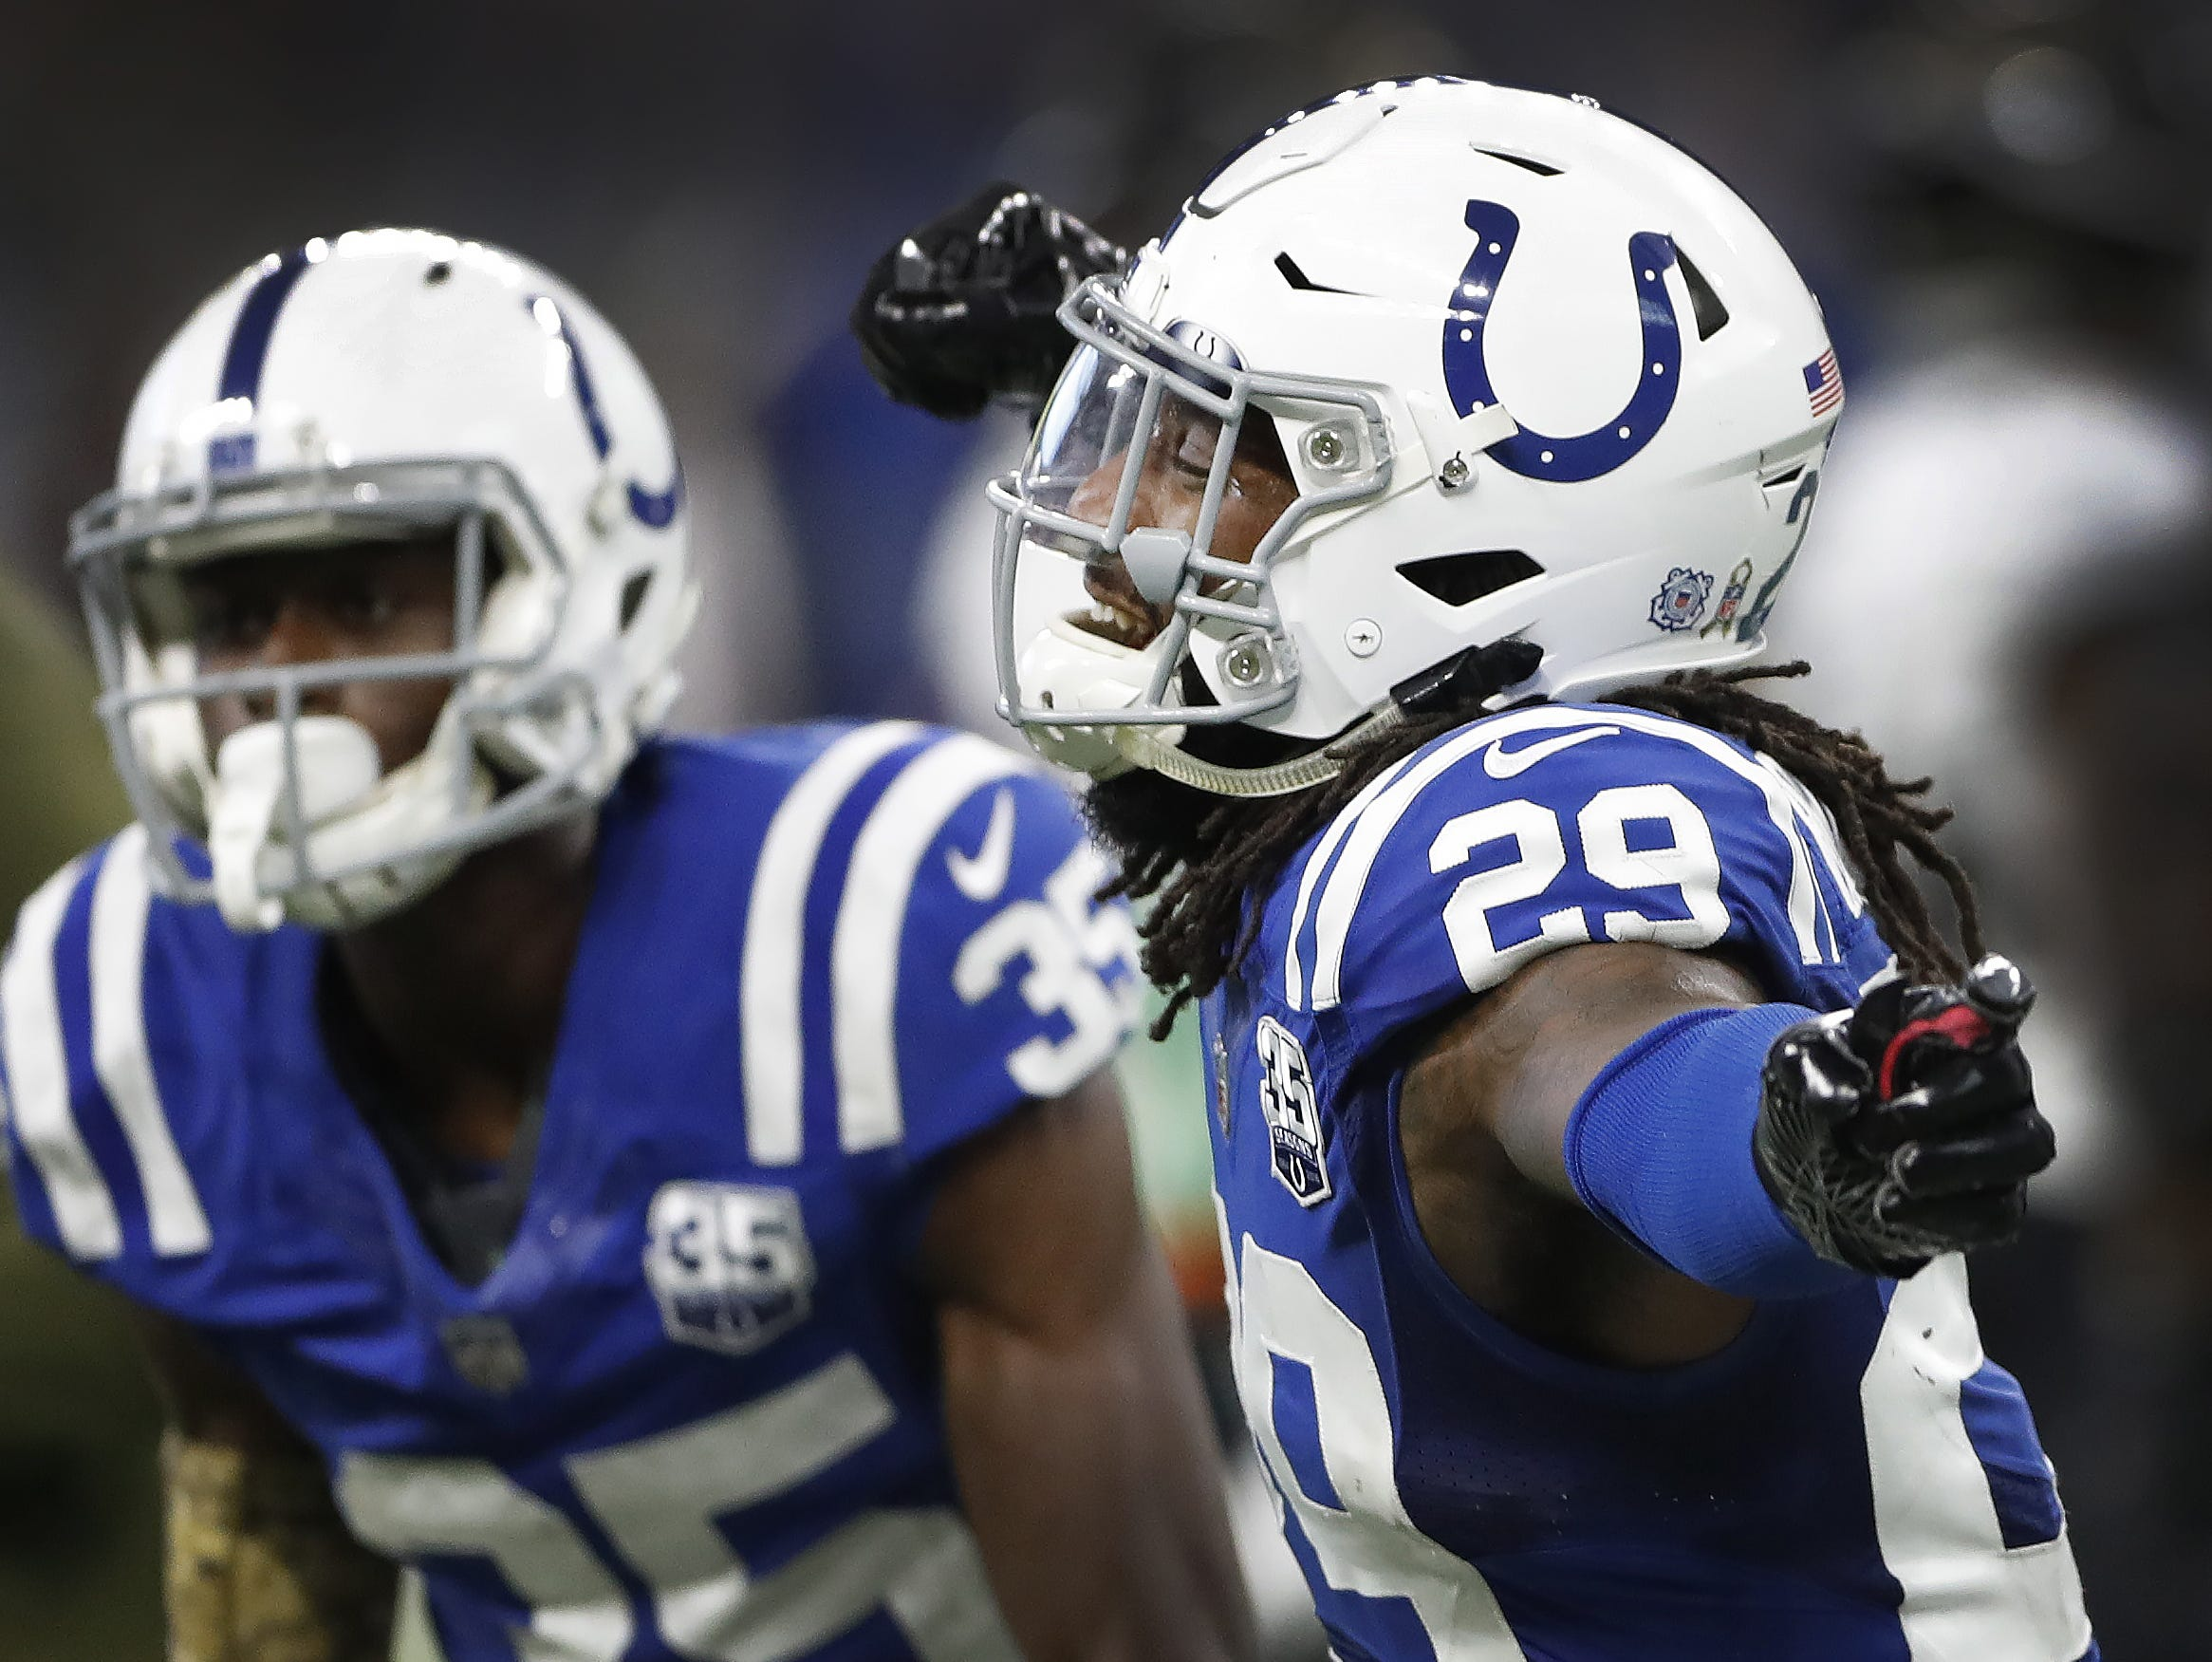 Indianapolis Colts free safety Malik Hooker (29) celebrates the officials ruling of a Jaguars fumble in the final minutes of the fourth quarter of their game at Lucas Oil Stadium on Sunday, Nov. 11, 2018. The Colts defeated the Jaguars 29-26.